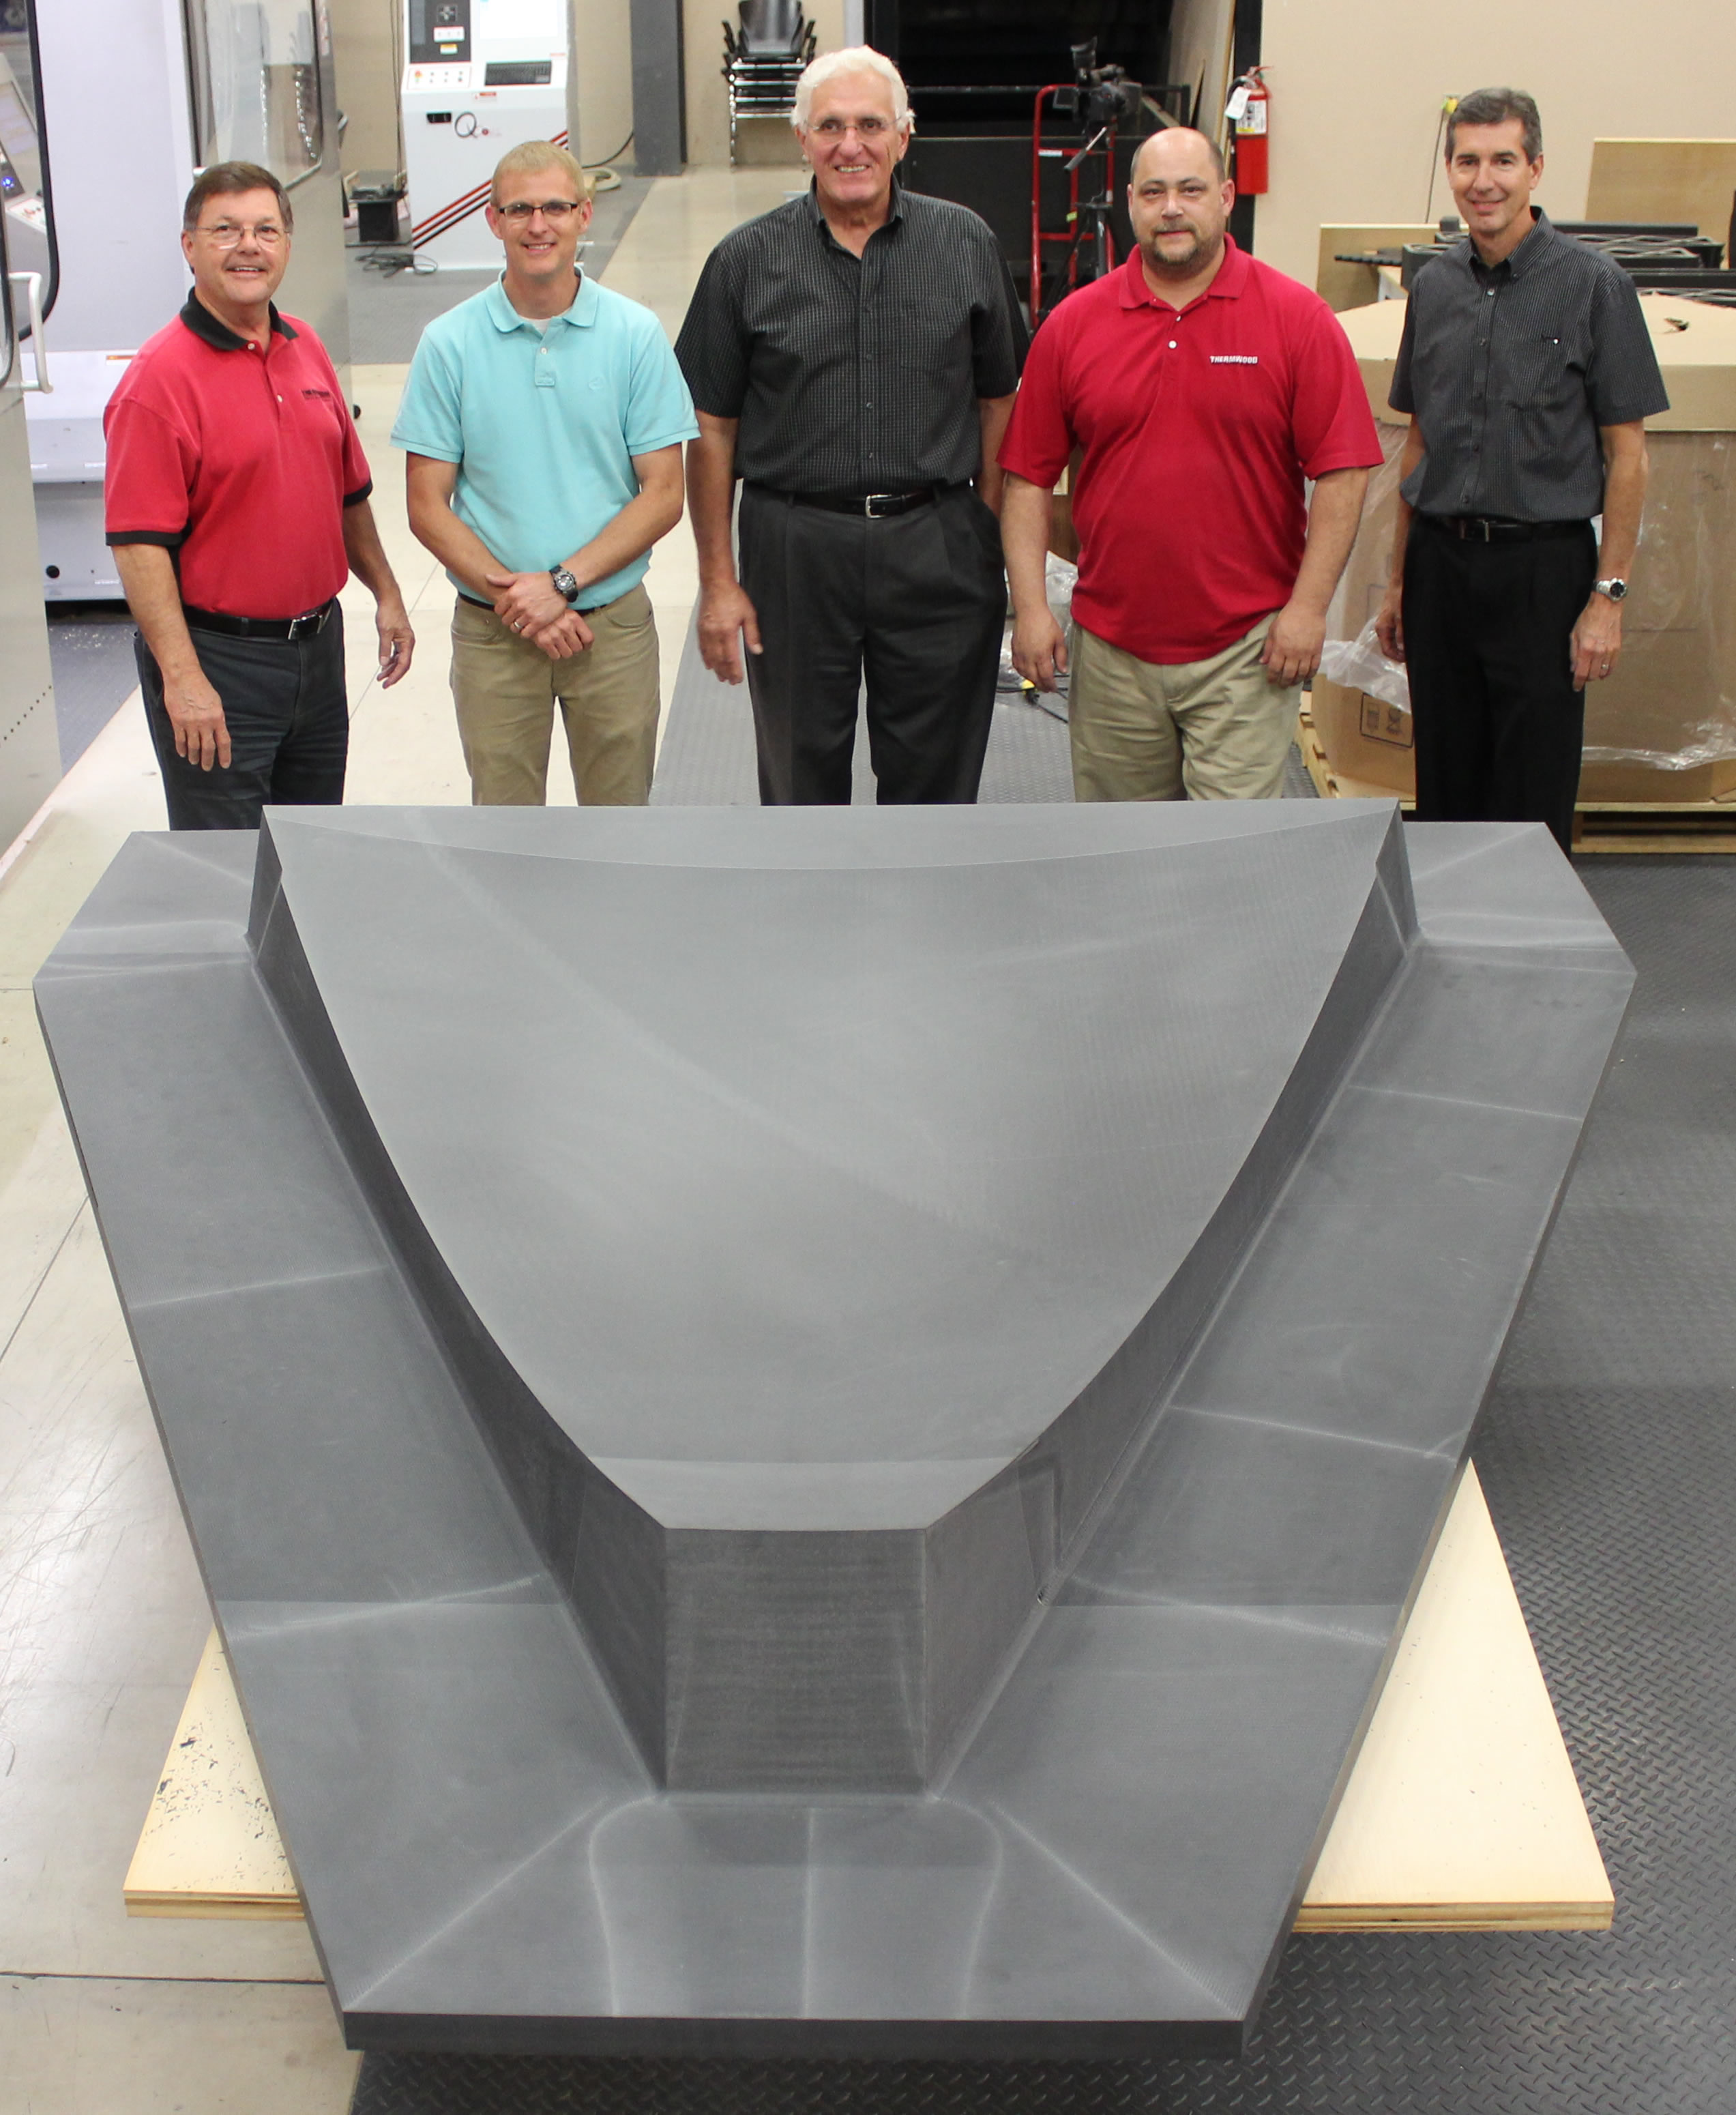 Thermwood LSAM Produces Solid, Void-free Parts